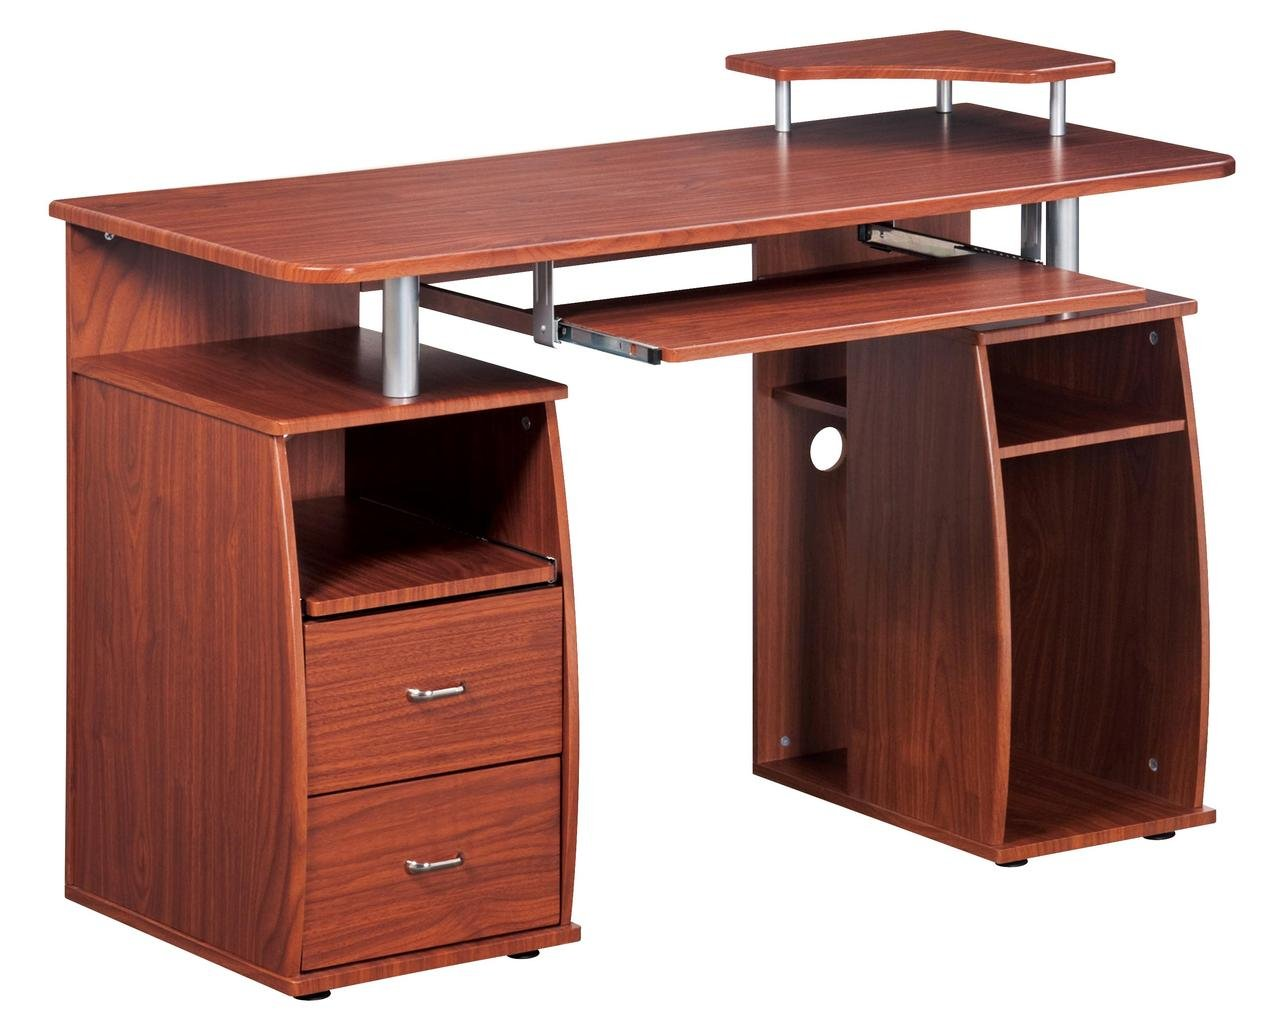 staples beech asset workstation desk cbs ohio mm